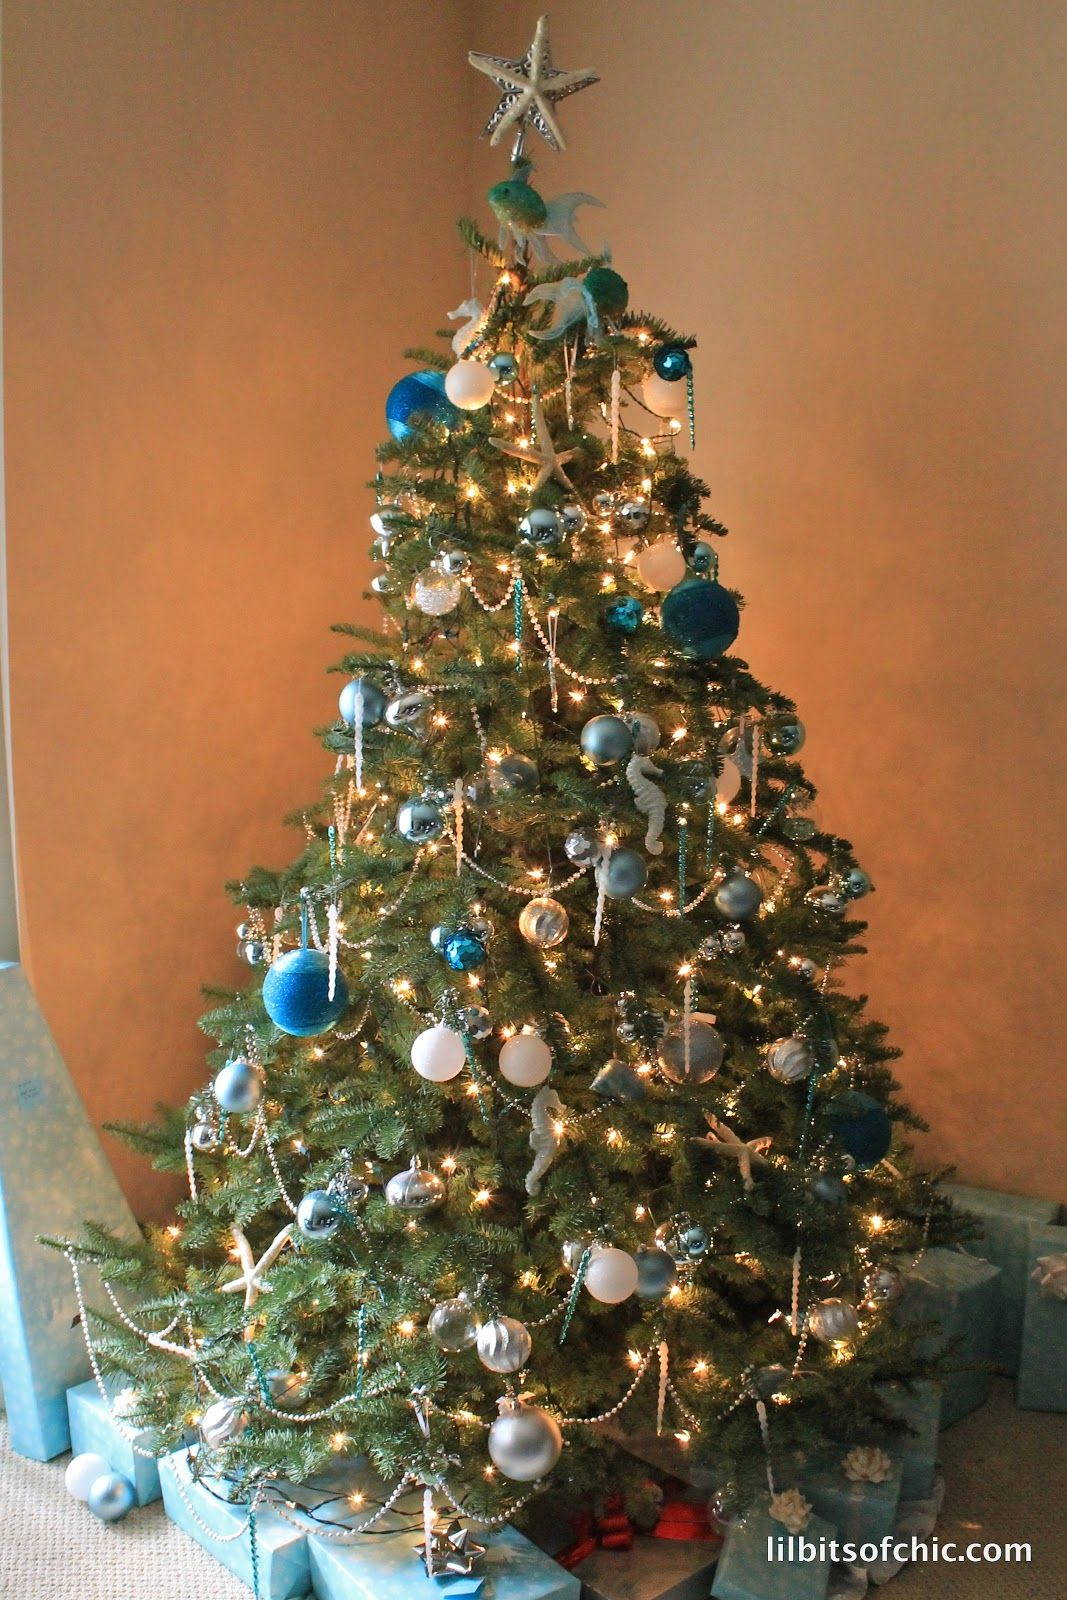 An Ocean Themed Christmas Tree with Ornaments from Kohl's: http://www.completely-coastal.com/2015/11/sea-inspired-coastal-christmas-collections.html